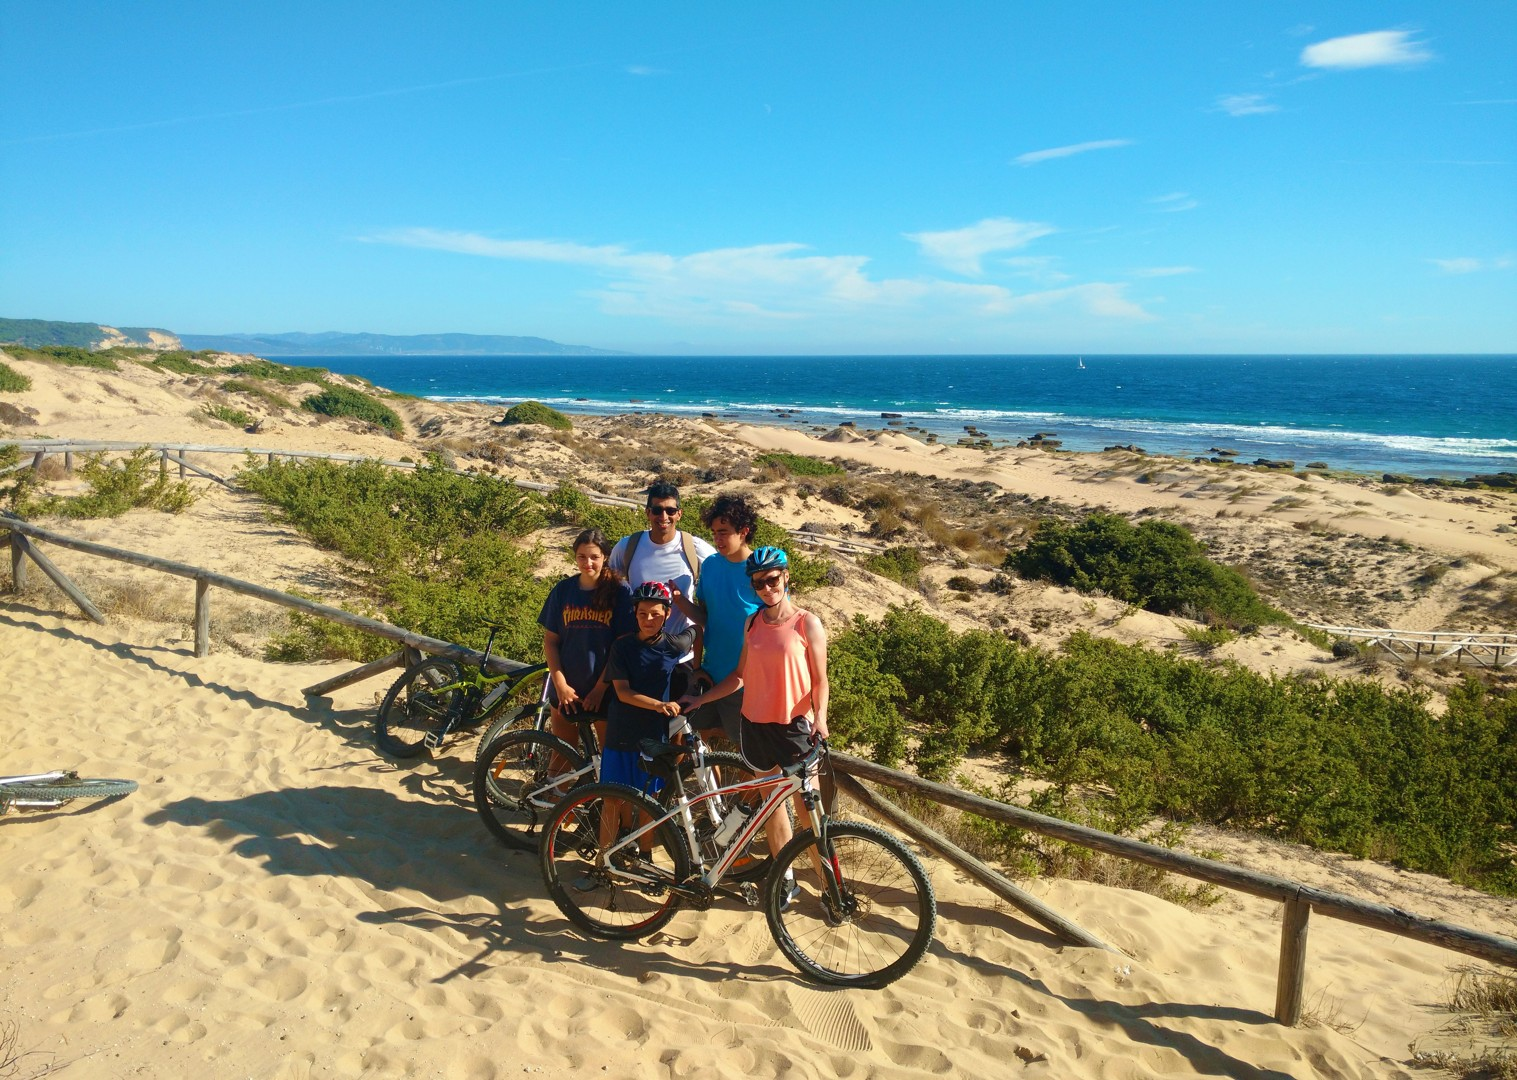 bike-holiday-spain-fun-times-on-the-beach.jpg - Southern Spain - Coastal Adventurer - Self-Guided Family Cycling Holiday - Family Cycling